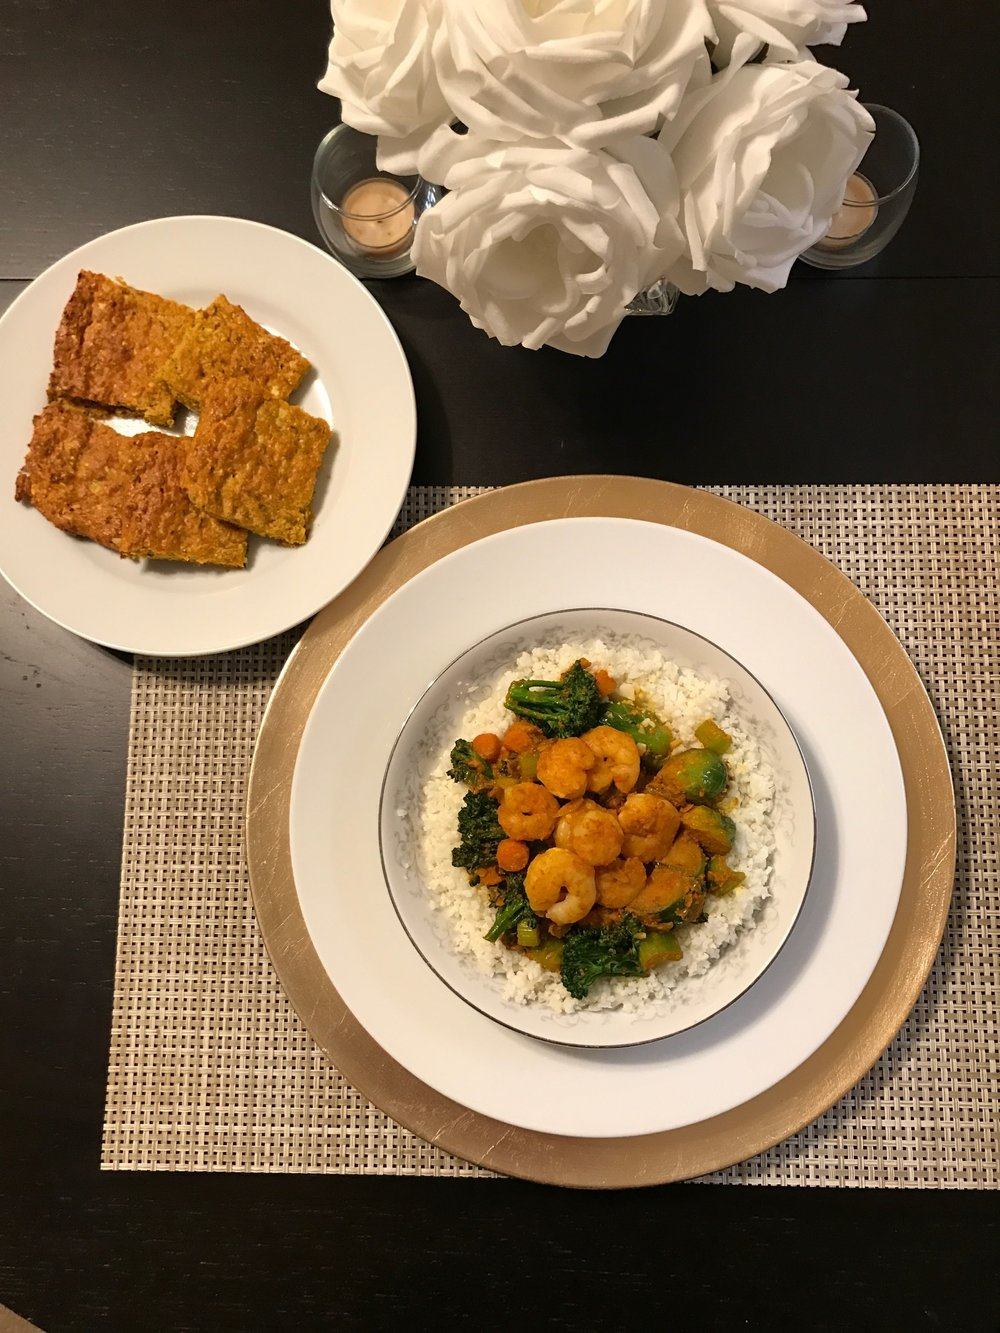 Turmeric Shrimp Stir Fry with Riced Cauliflower - Paleo & Whole 30